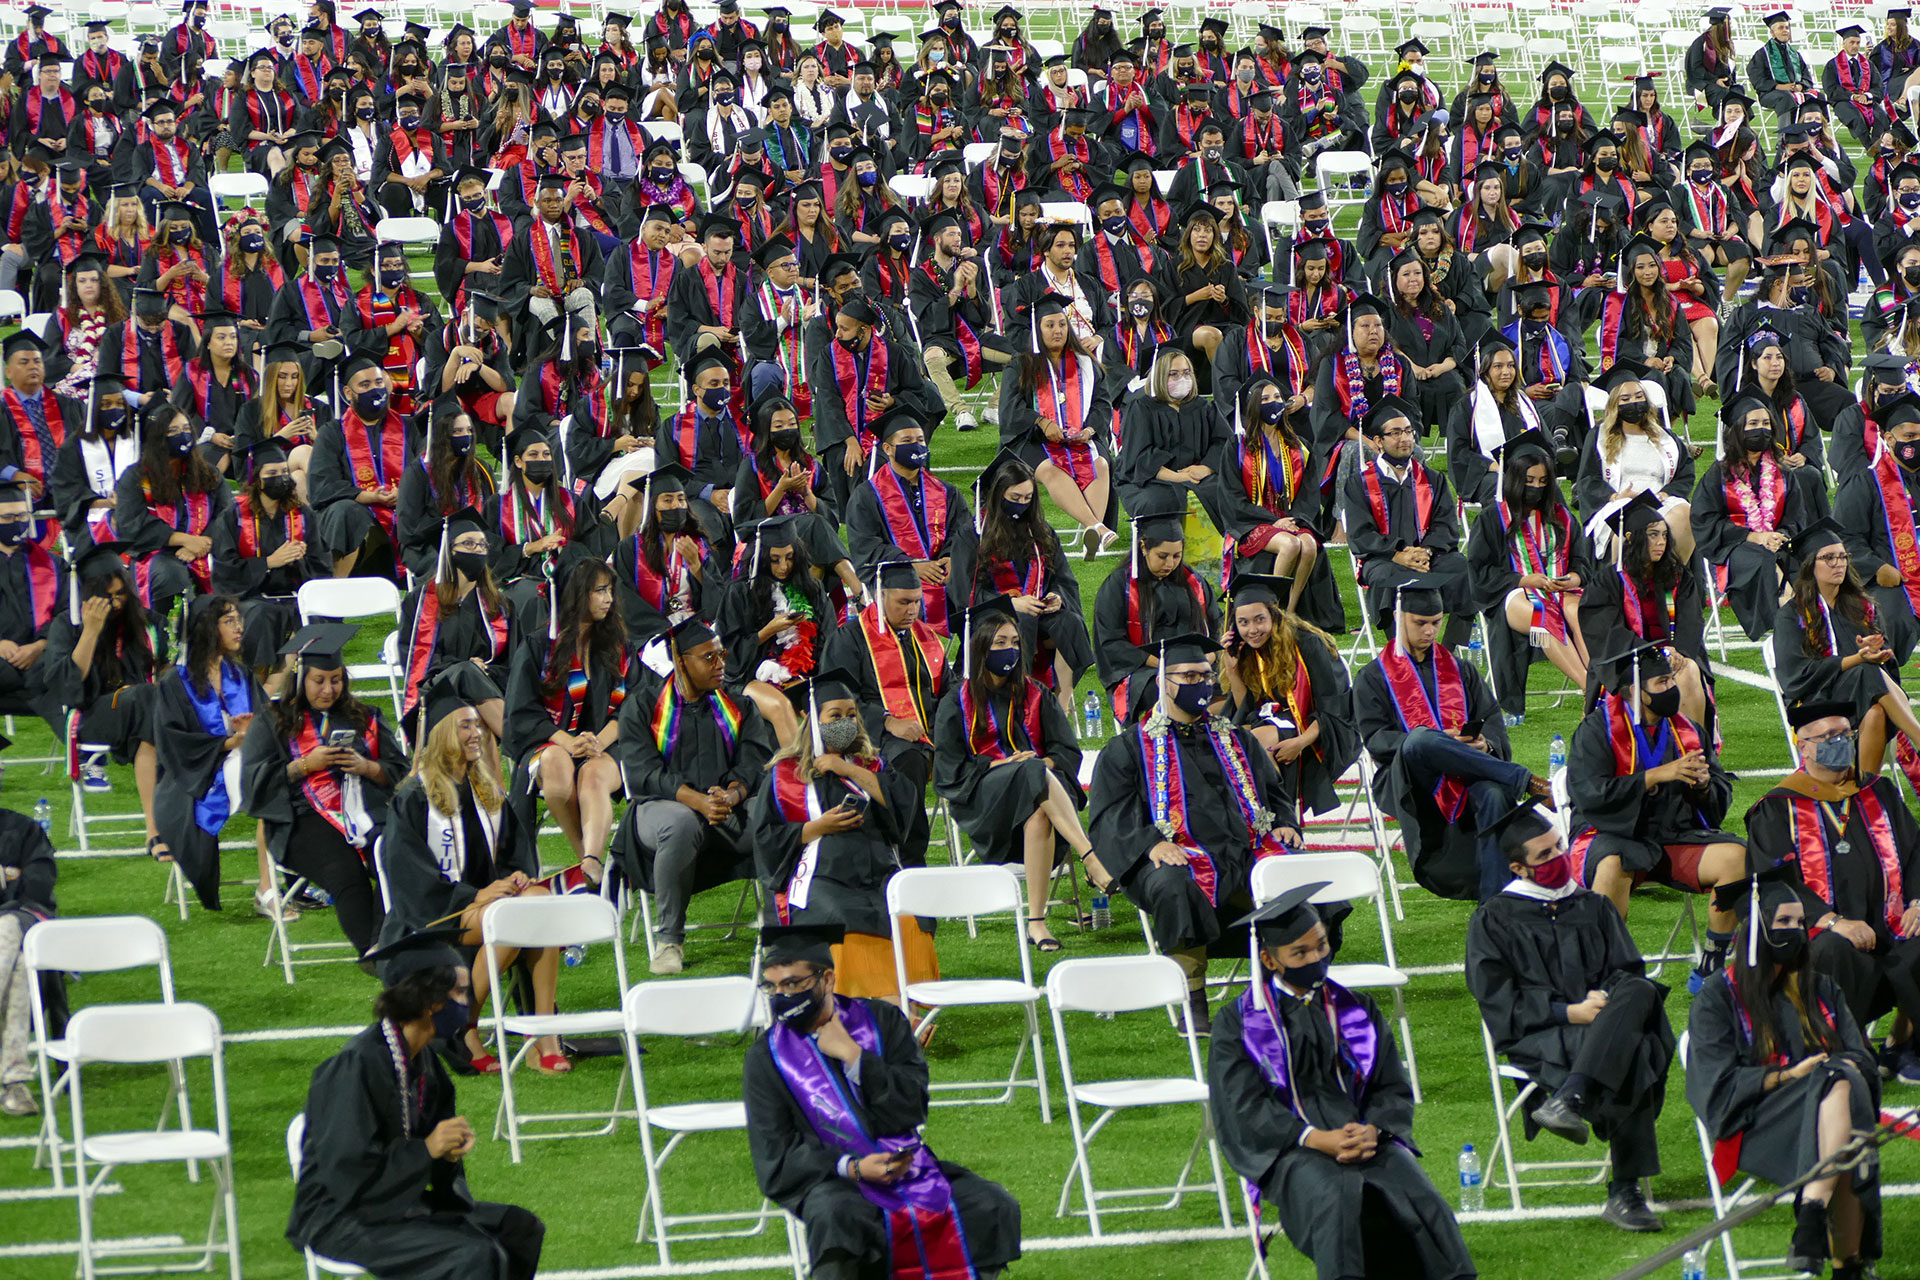 College of Arts and Humanities graduates.